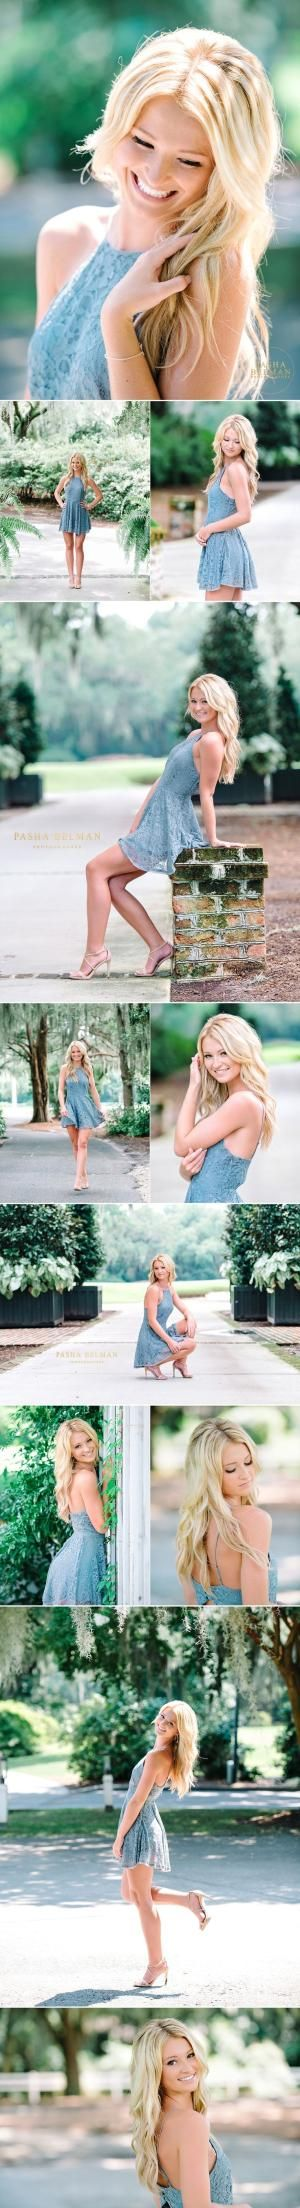 Senior Pictures   Senior Photography   High School Senior Photographers in Charleston and Myrtle Beach   Pasha Belman Photography High School Senior Picture Ideas for Girls by DeeDeeBean